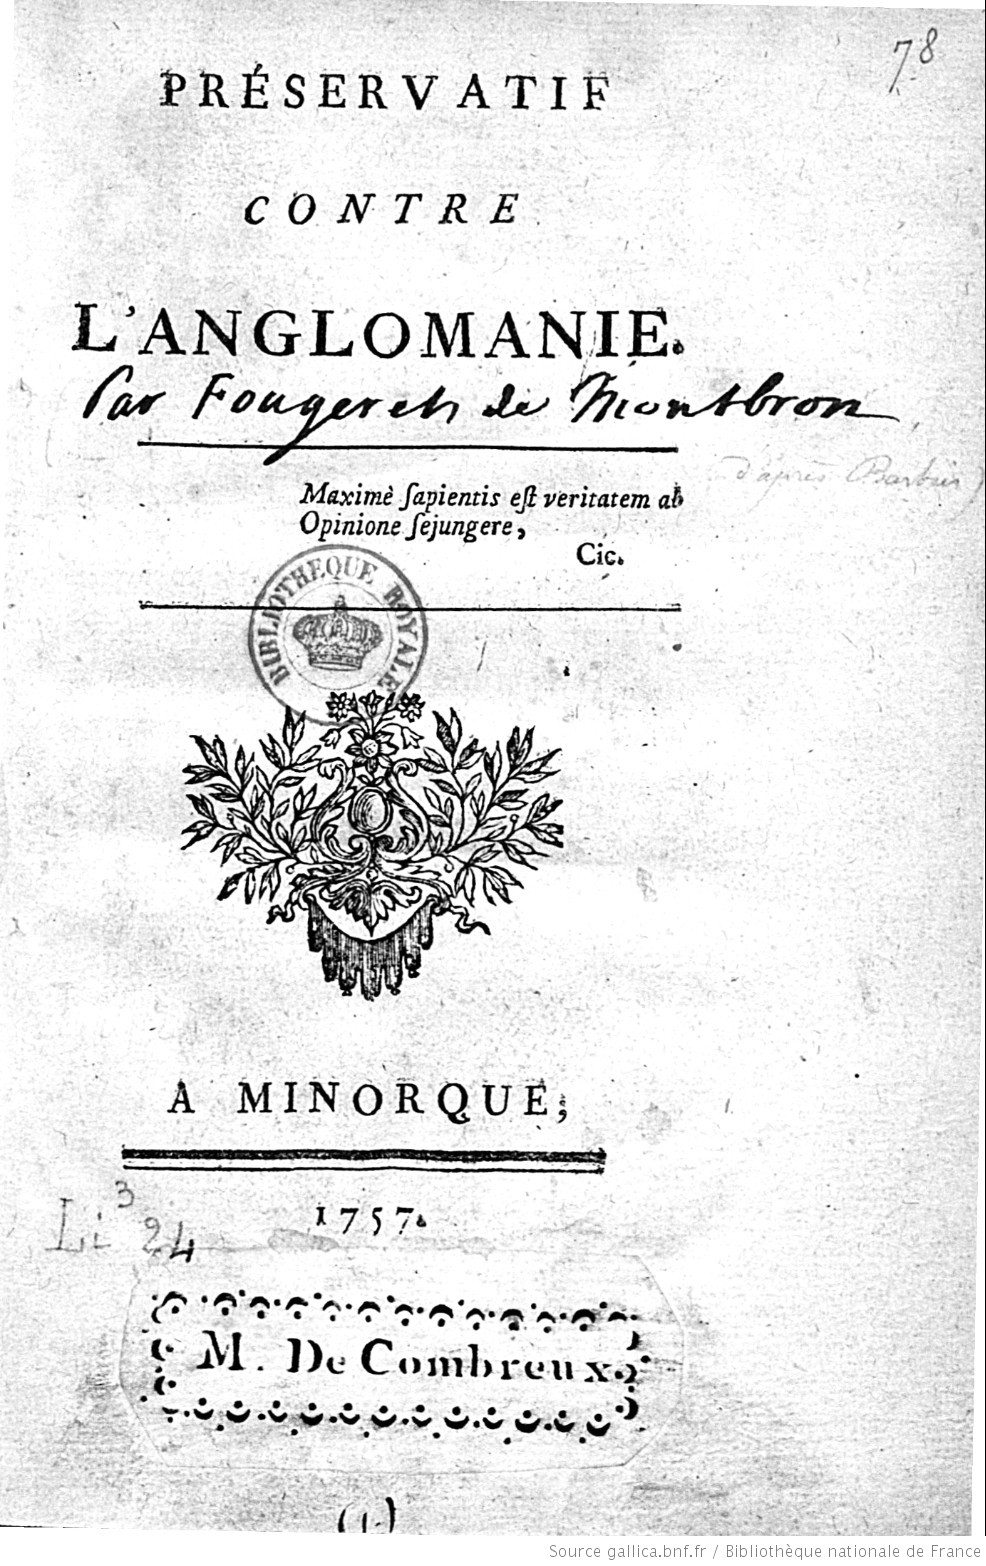 the early education and life of francois marie arouet Francois marie arouet de voltaire  since the early 20th century, he has also been doomed to be misquoted by those using him as a weapon in the free-speech wars he never actually wrote i.